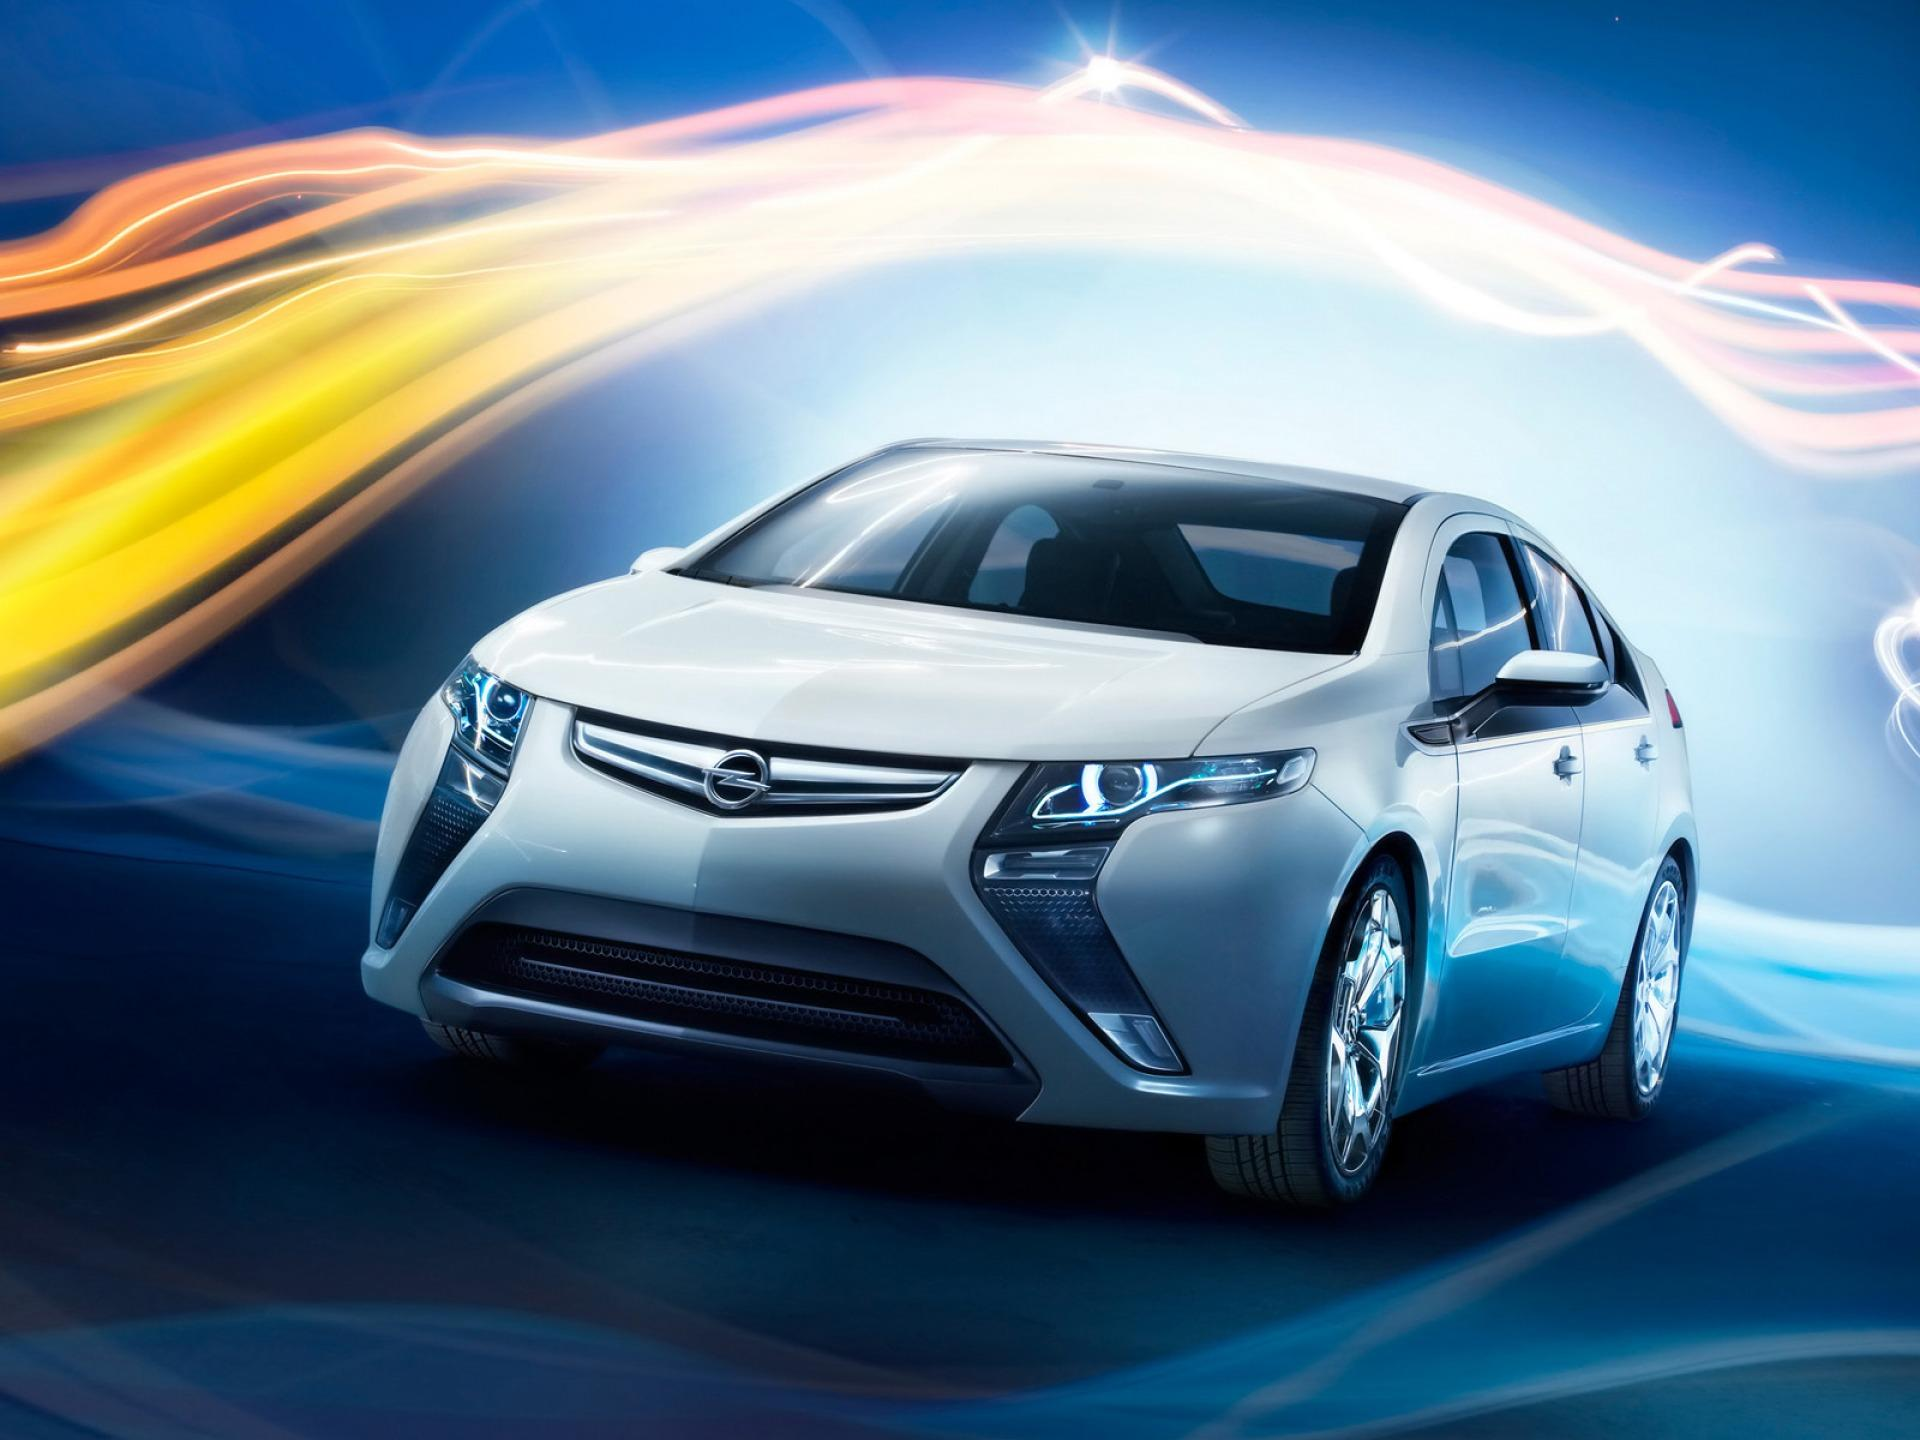 Opel Ampera Wallpapers Opel Cars Wallpapers in jpg format for free